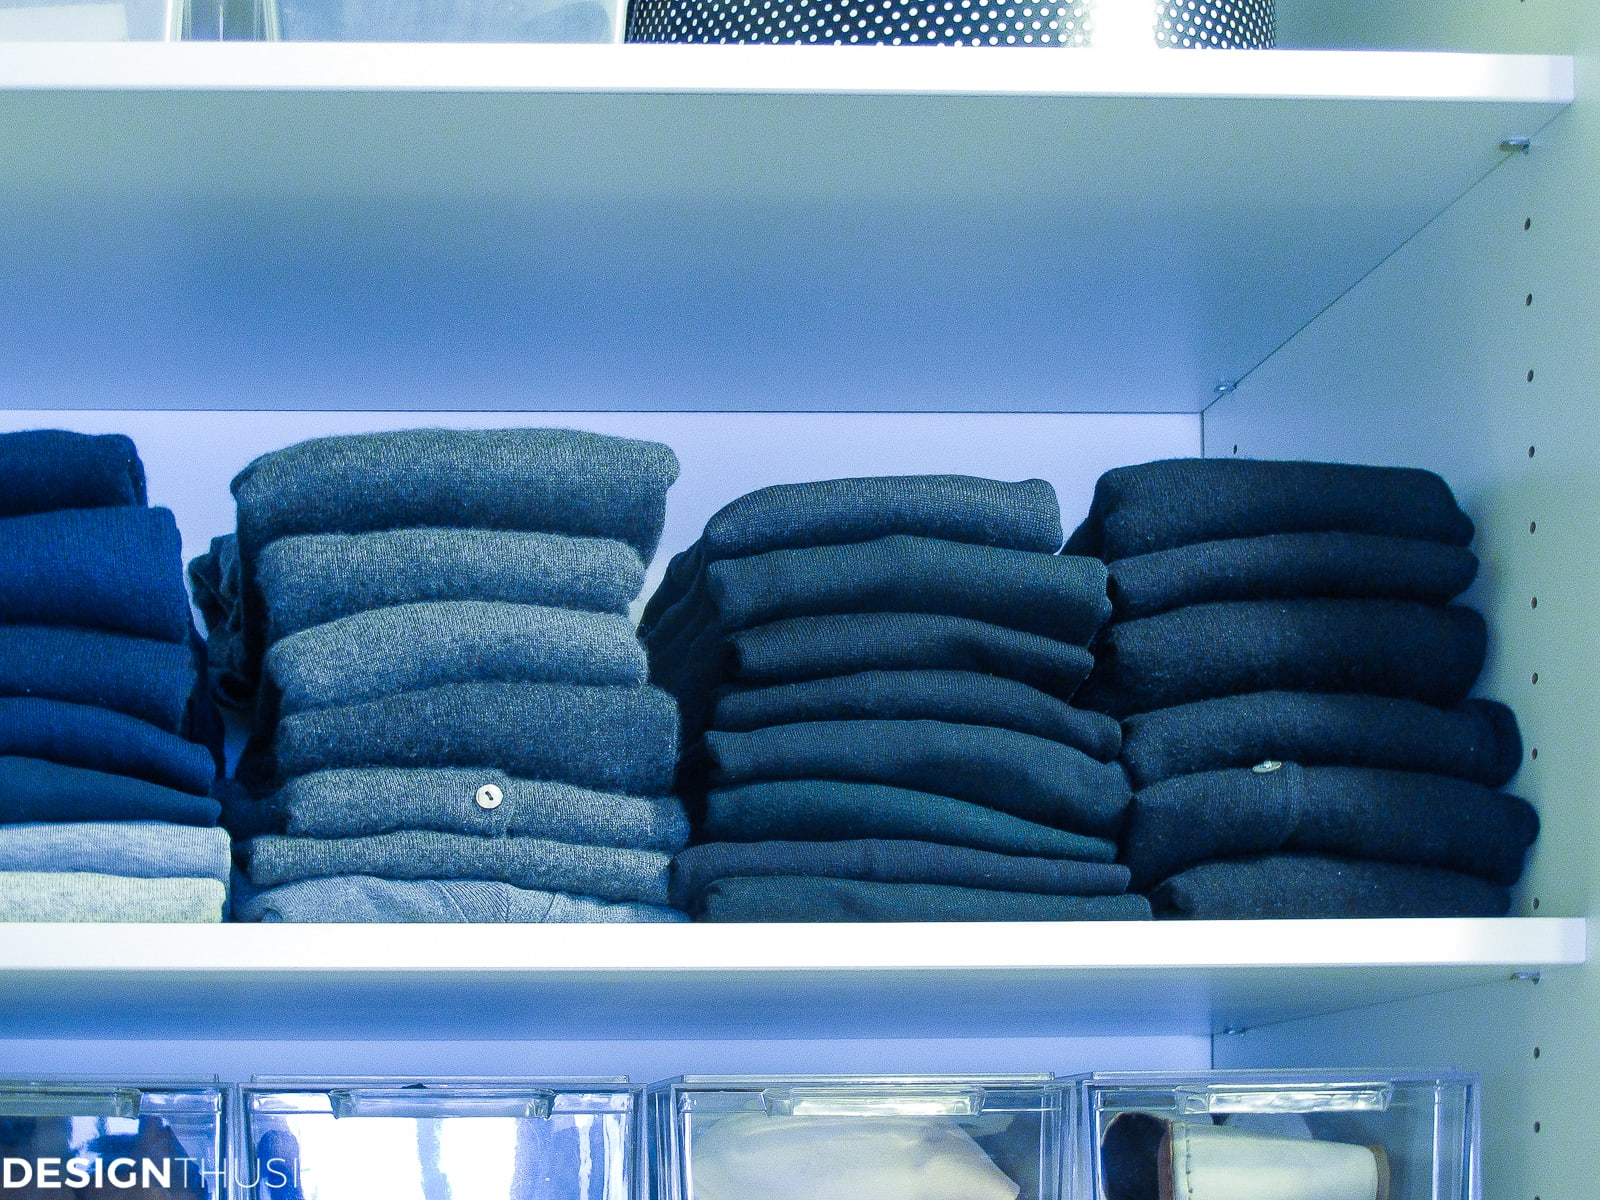 Closet Remodel | Organization Tips That Are Easy to Maintain - designthusiasm.com